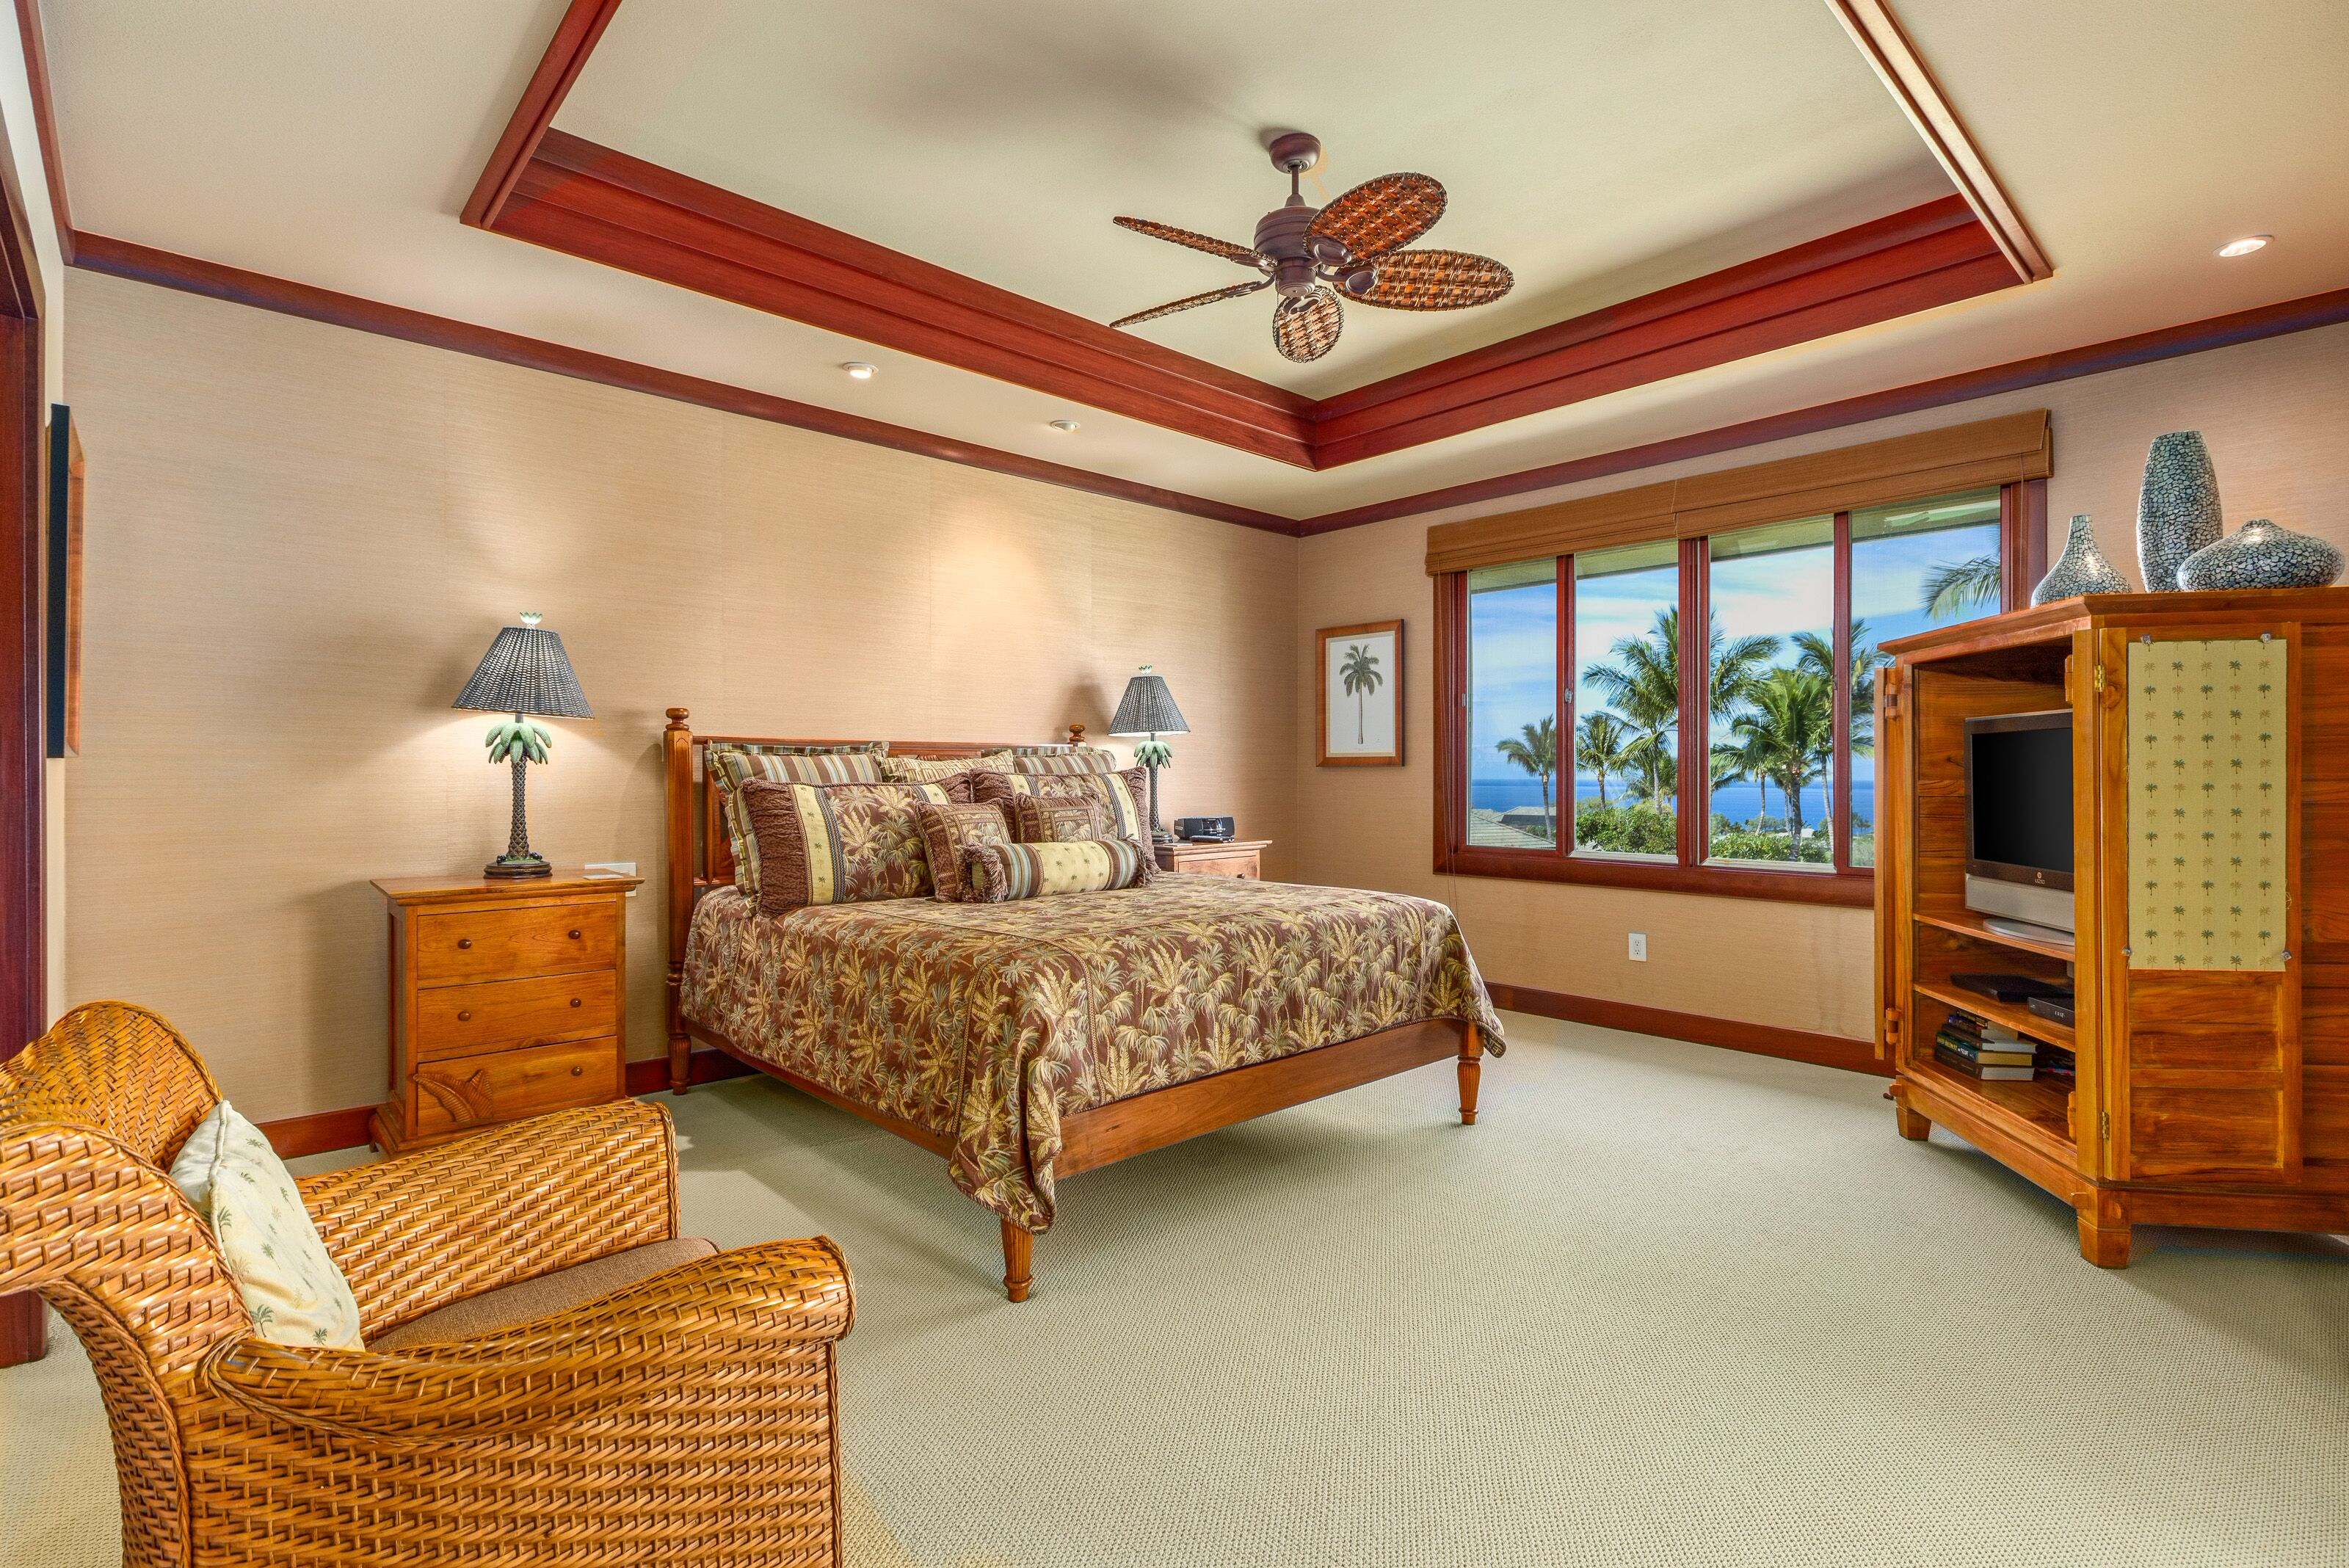 Lovely second floor, ocean view condo, covered lanai, outdoor kitchen, easy drive to Mauna Kea amenities